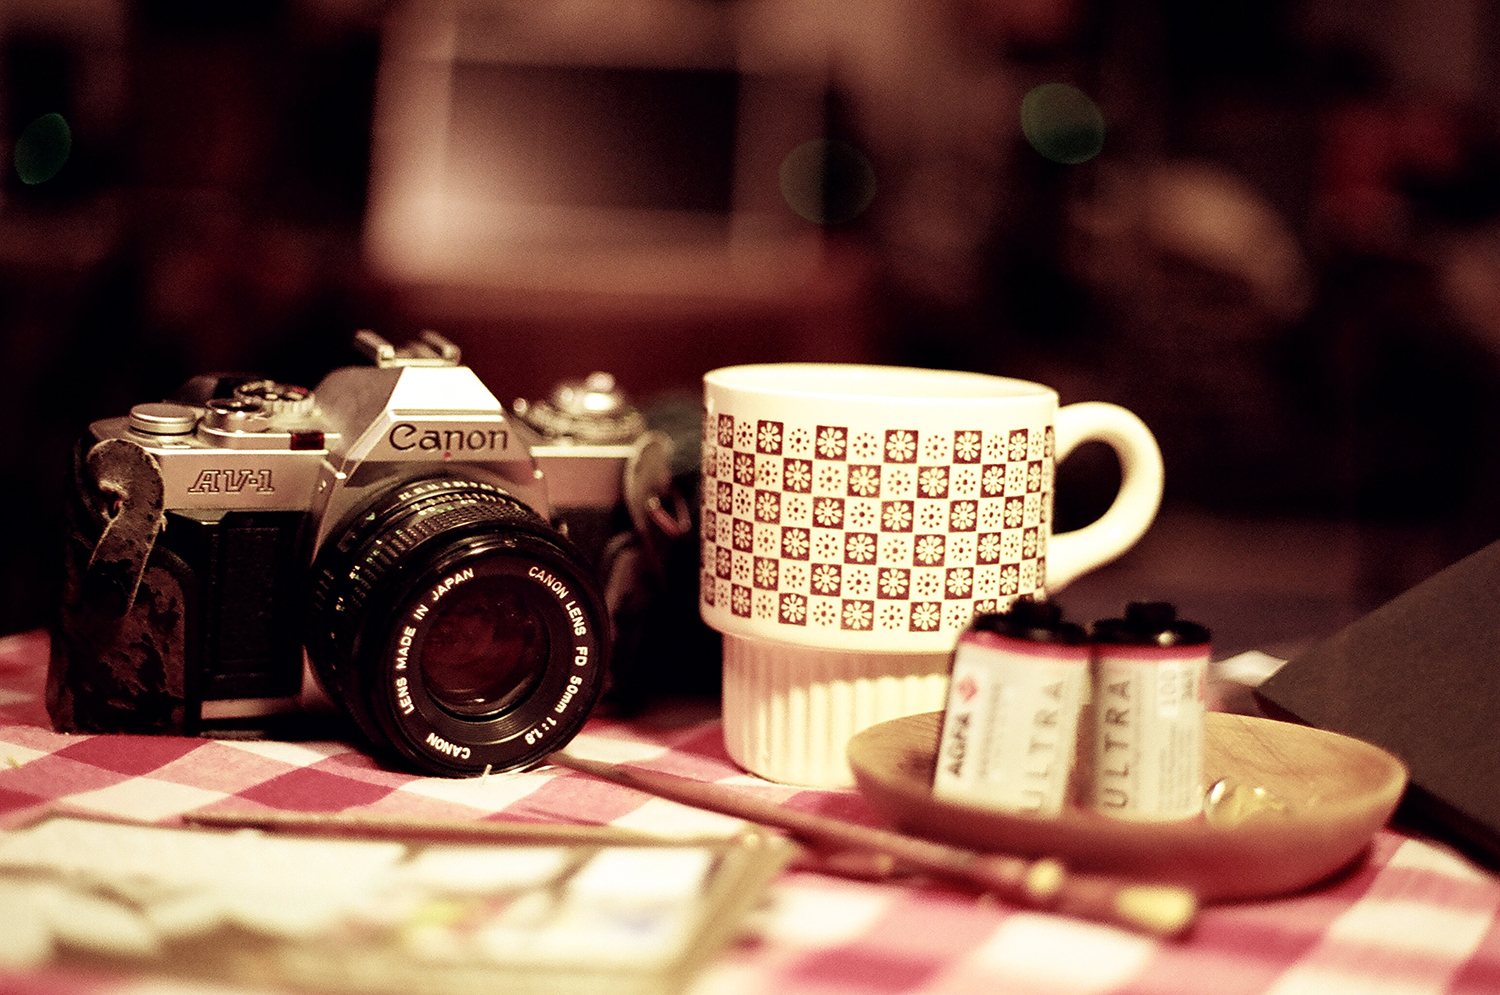 coffee and camera and film at home